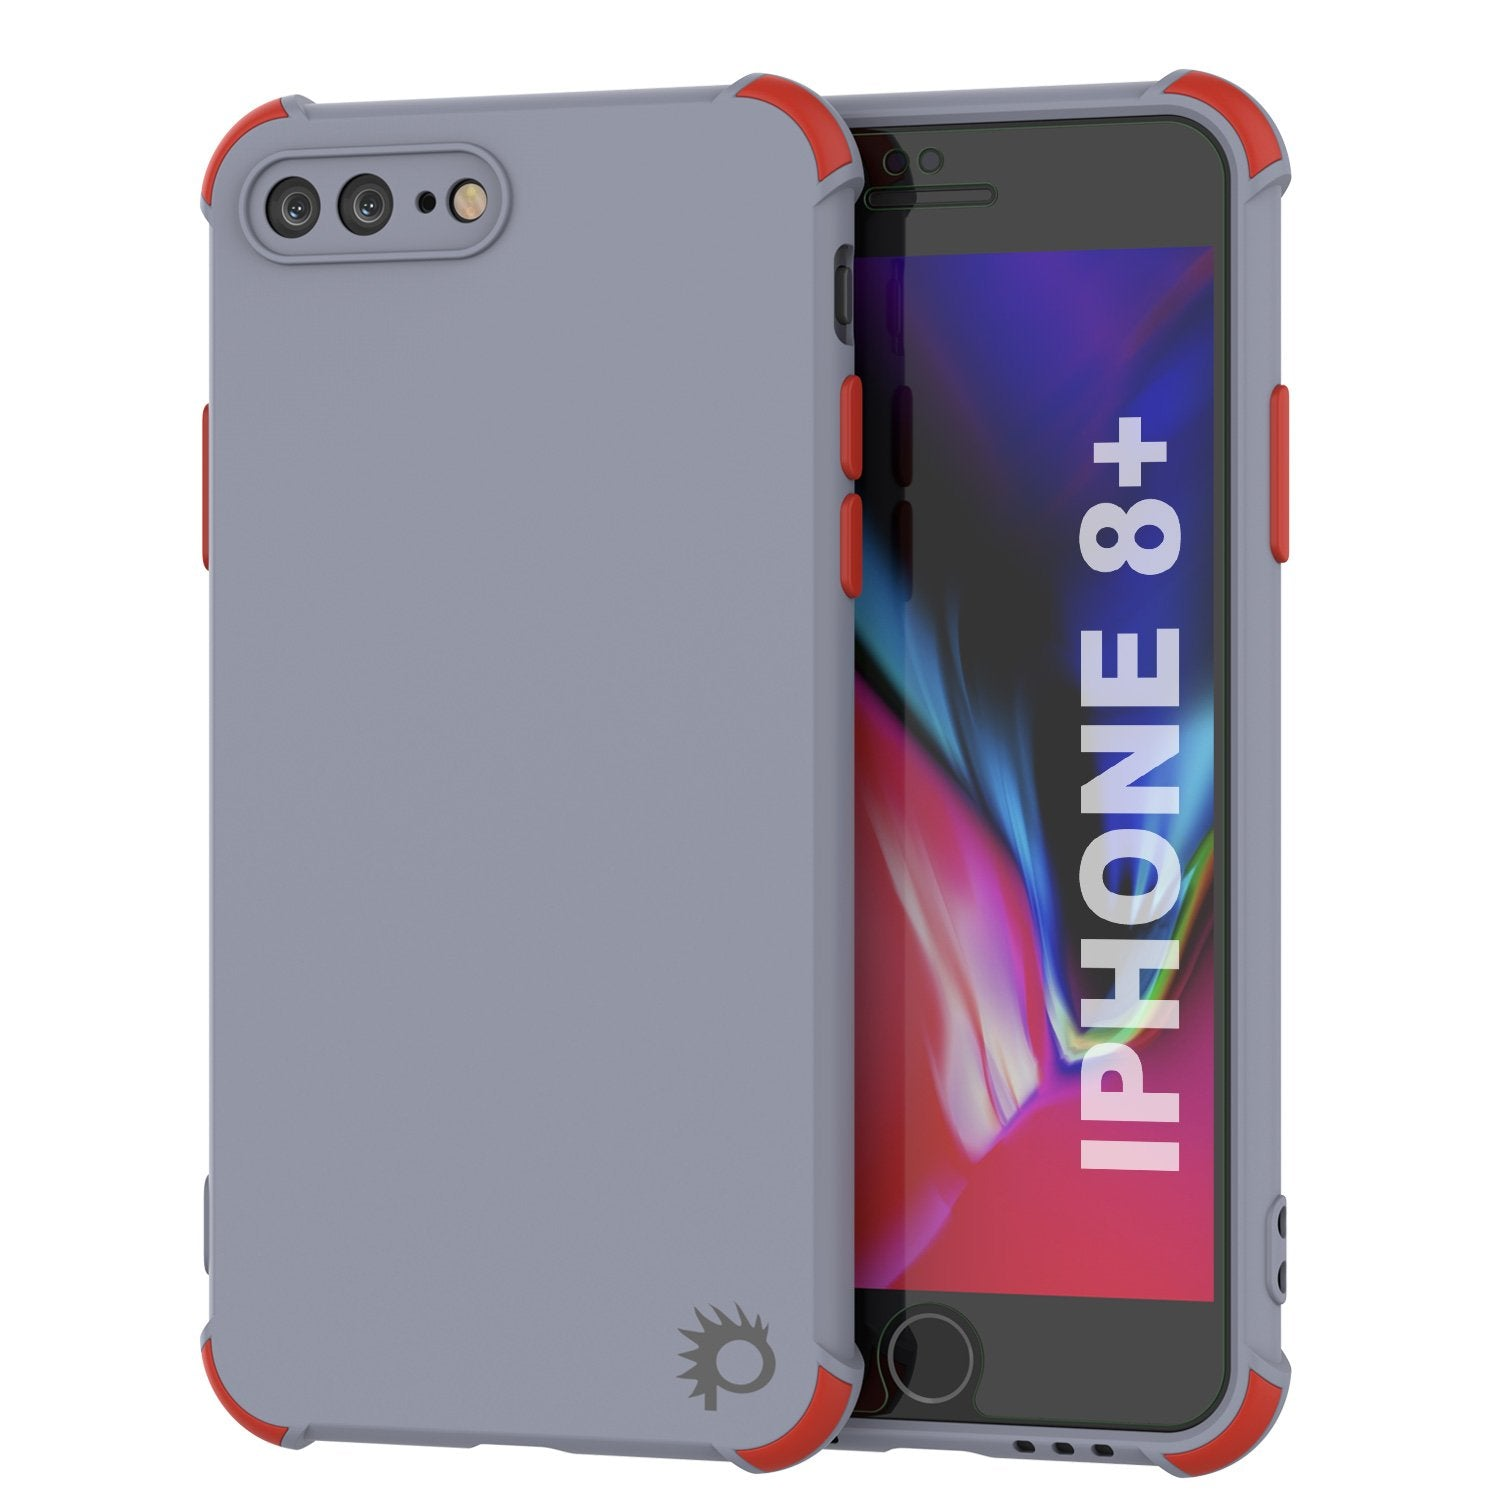 Punkcase Protective & Lightweight TPU Case [Sunshine Series] for iPhone 8+ Plus [Grey]